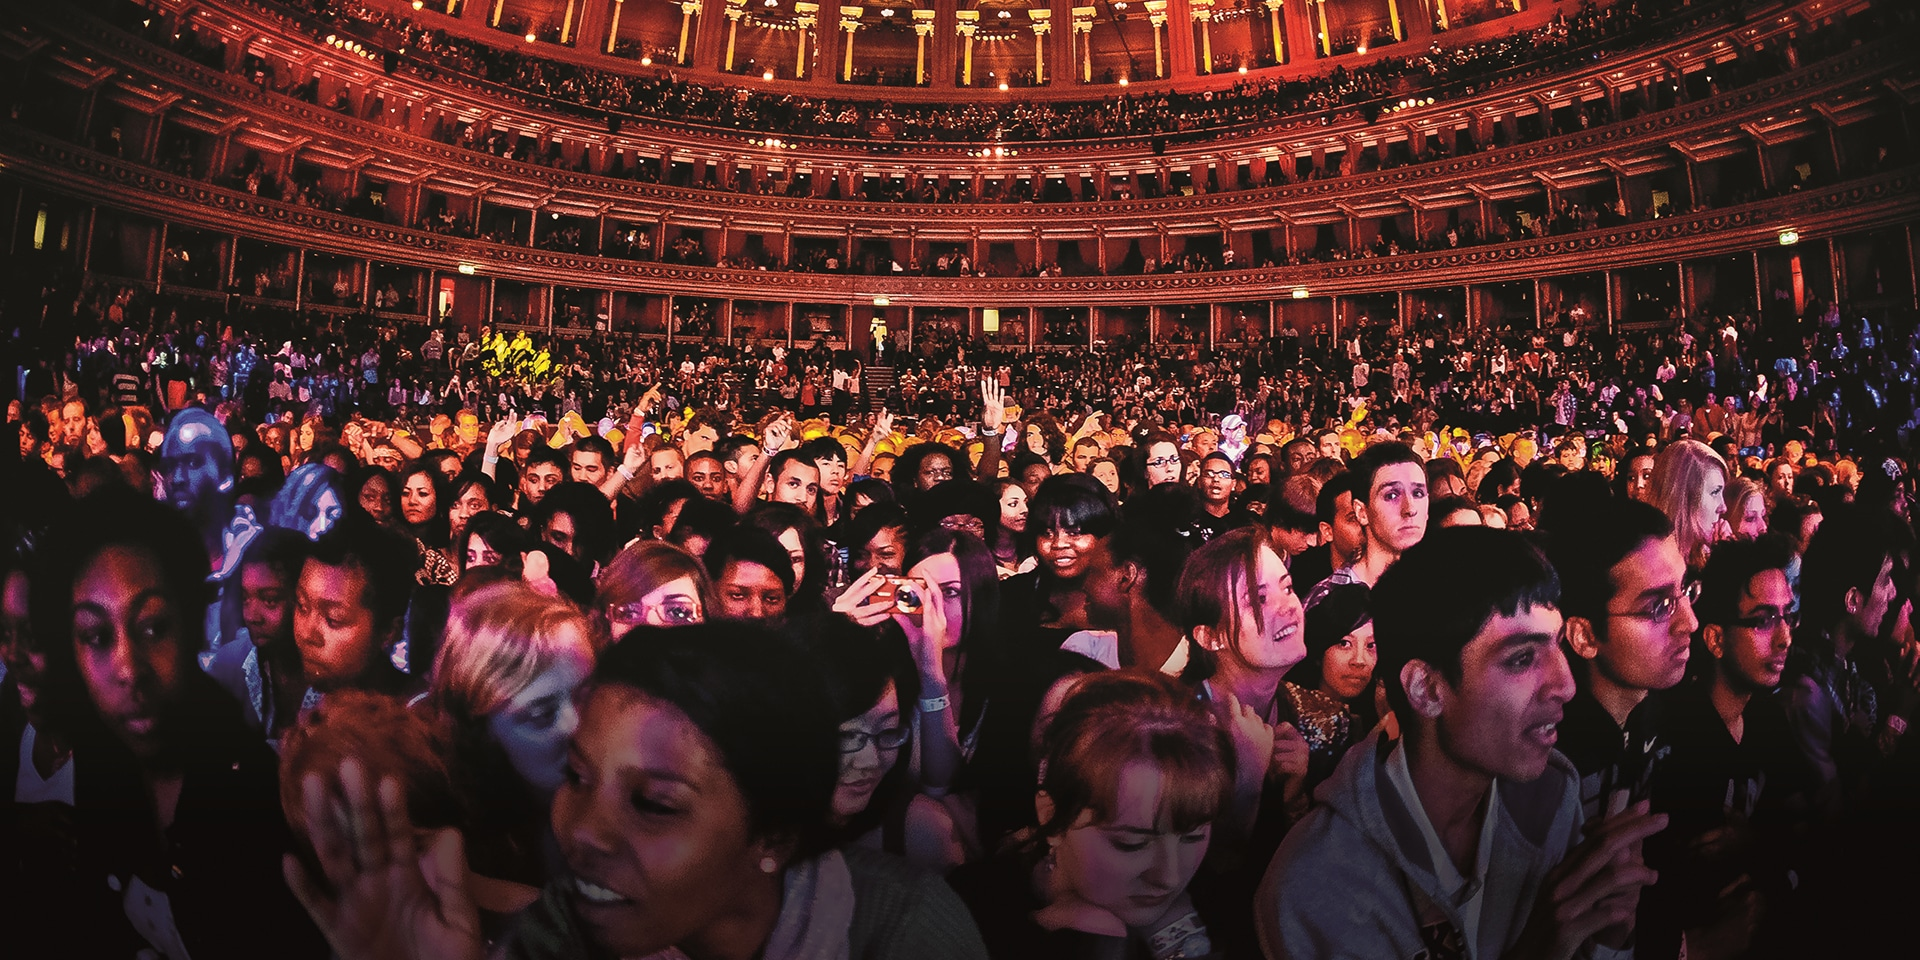 Royal Albert Hall: The Big 150